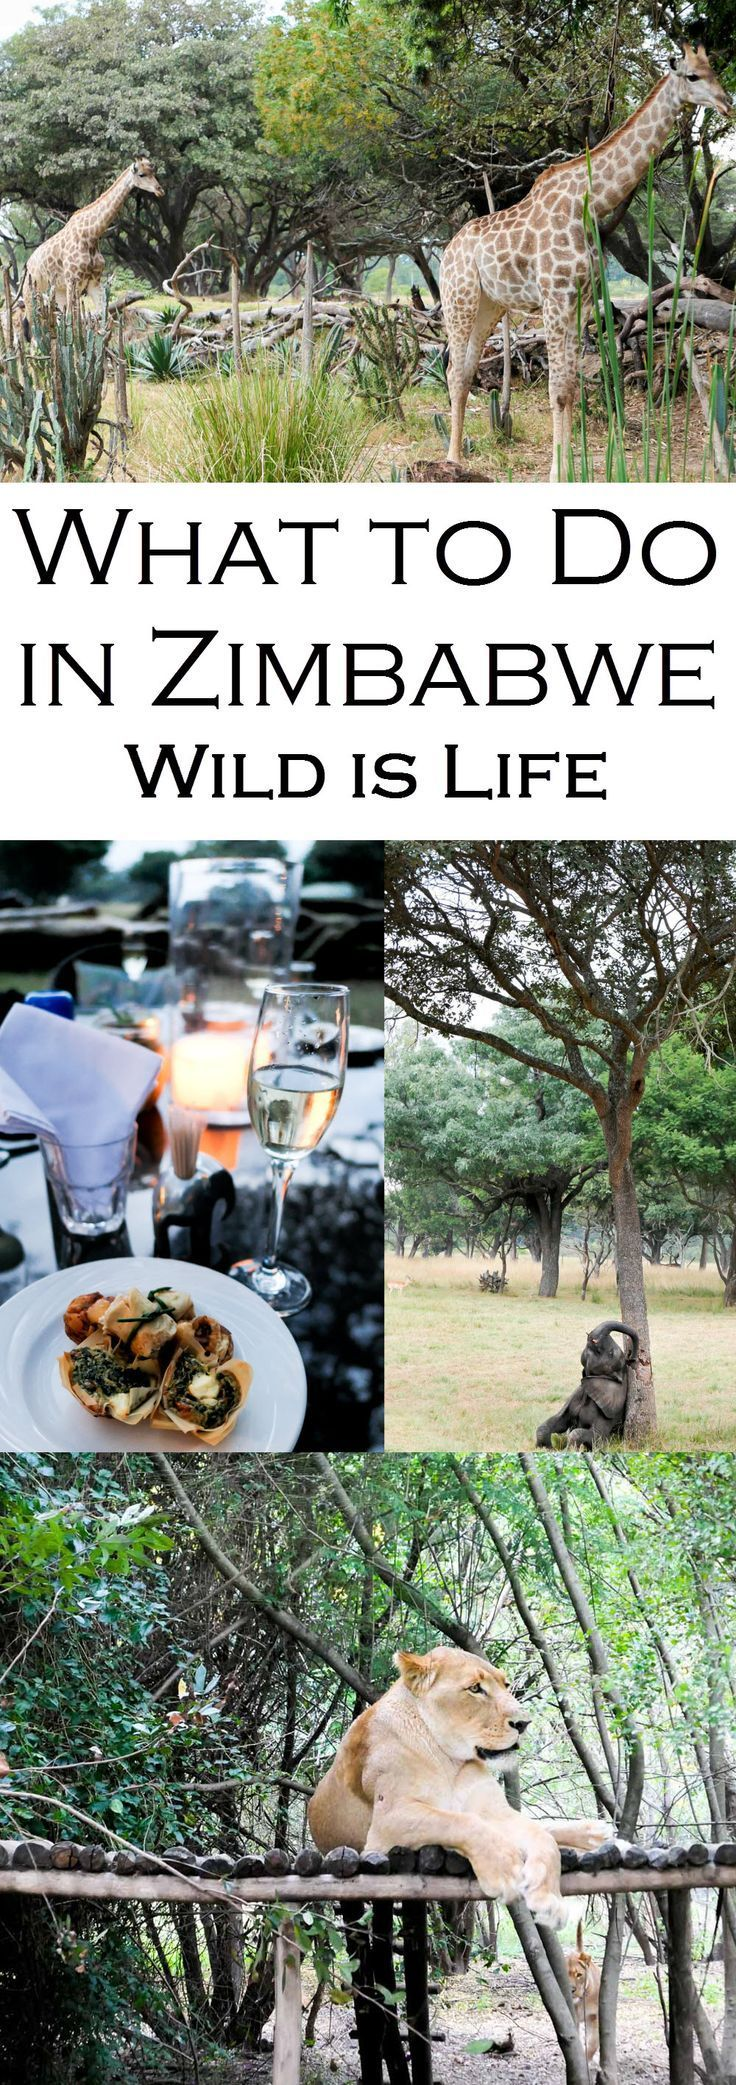 Wondering What to do in Harare, Zimbabwe? Visit Wild is Life an animal conservancy working to return injured animals to the wild. Enjoy feeding giraffes, baby elephants, and afternoon tea and coffee. End the afternoon with champagne and canapes for sundowners!